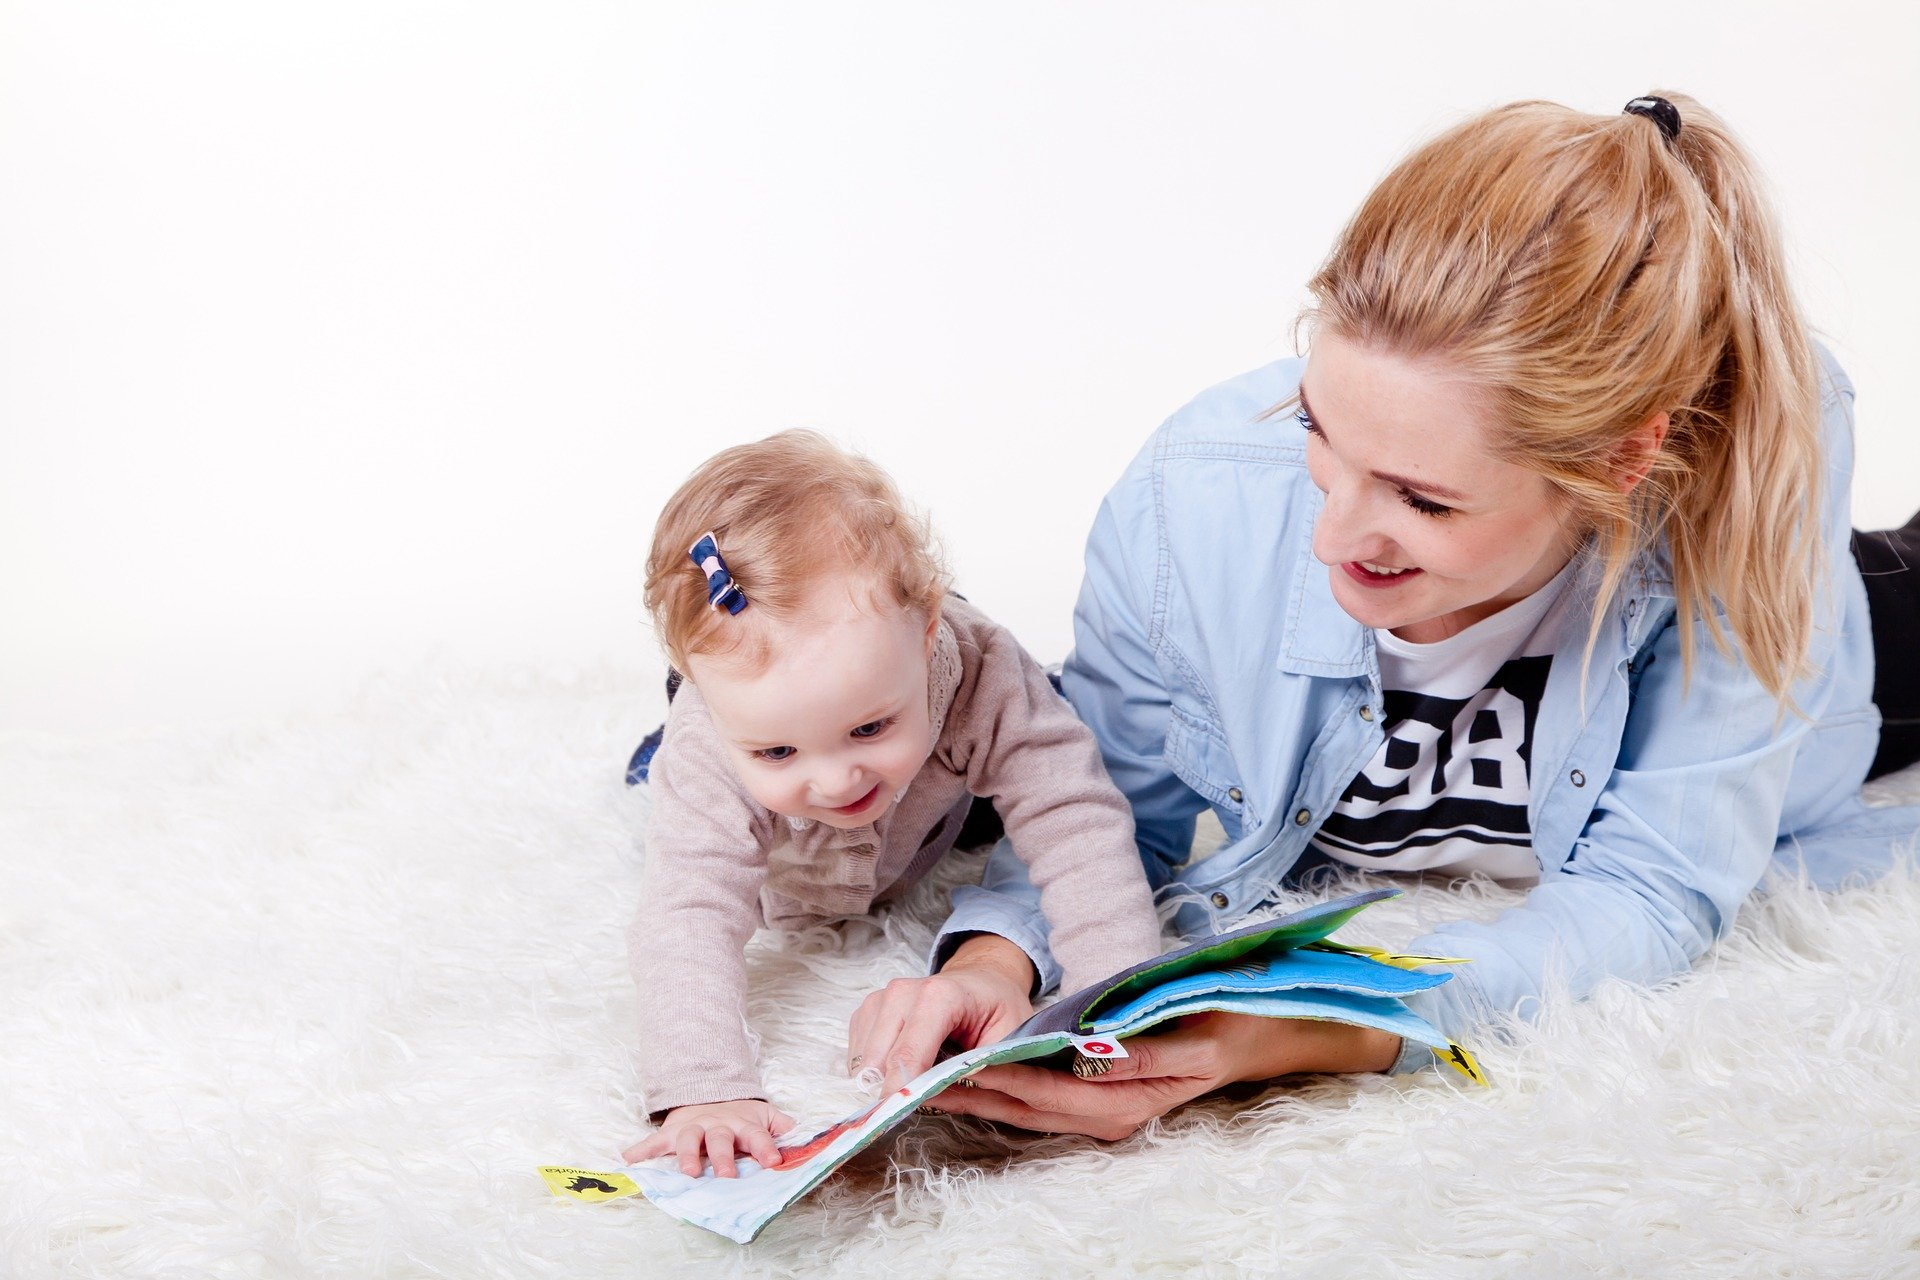 mom reading with baby - Dolly Parton's Imagination Library starts at birth